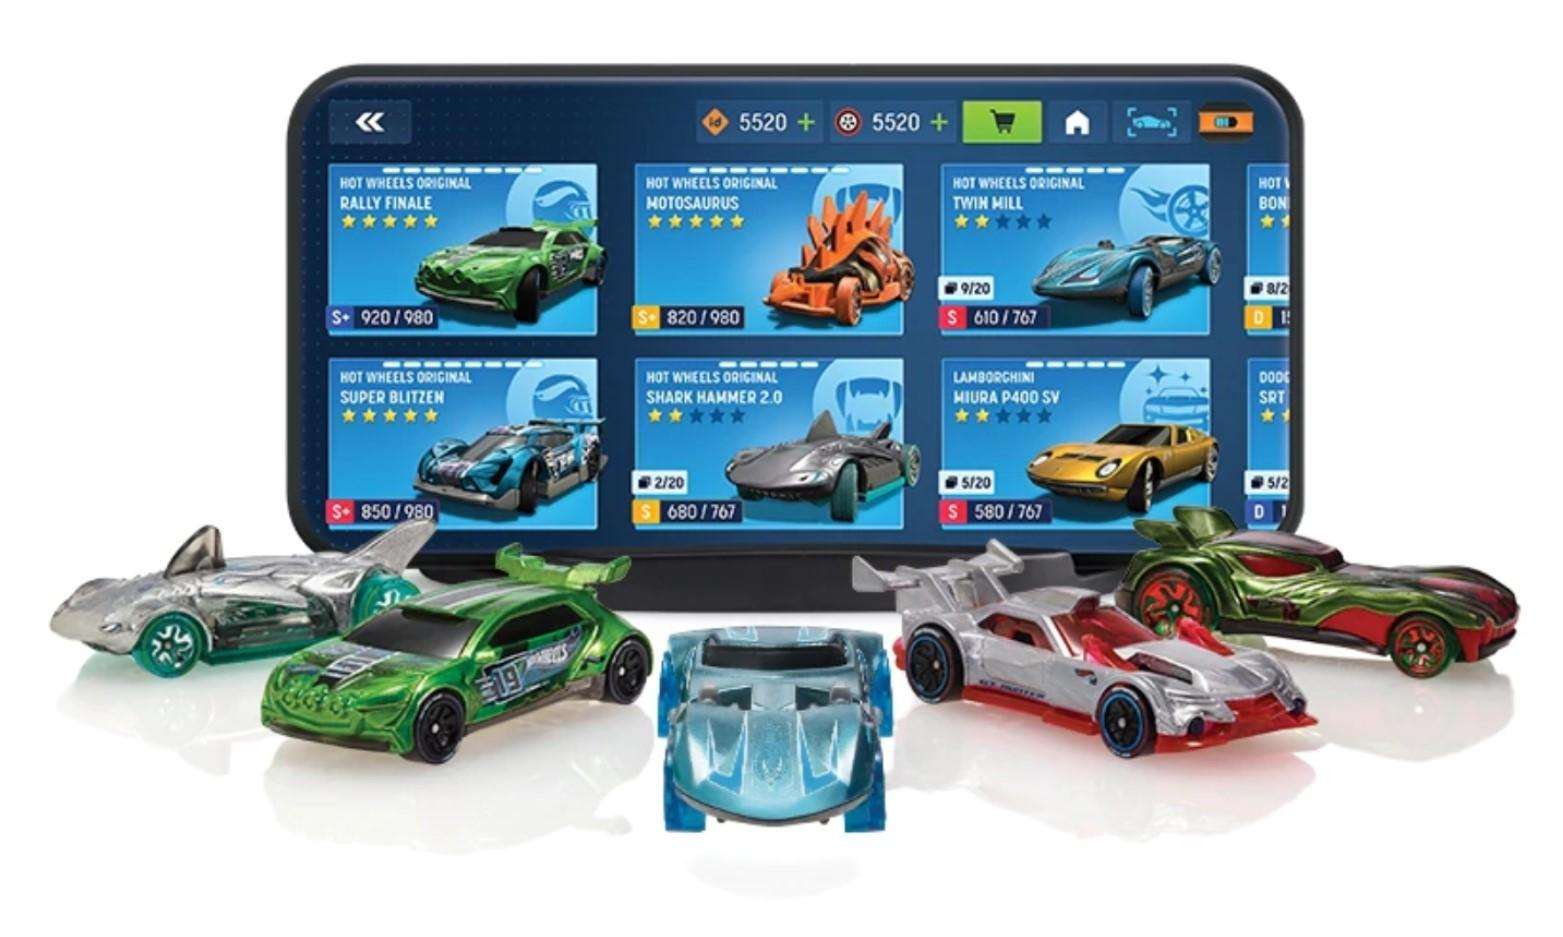 Mattel Launches Physical and Digital Play with New Hot Wheels id